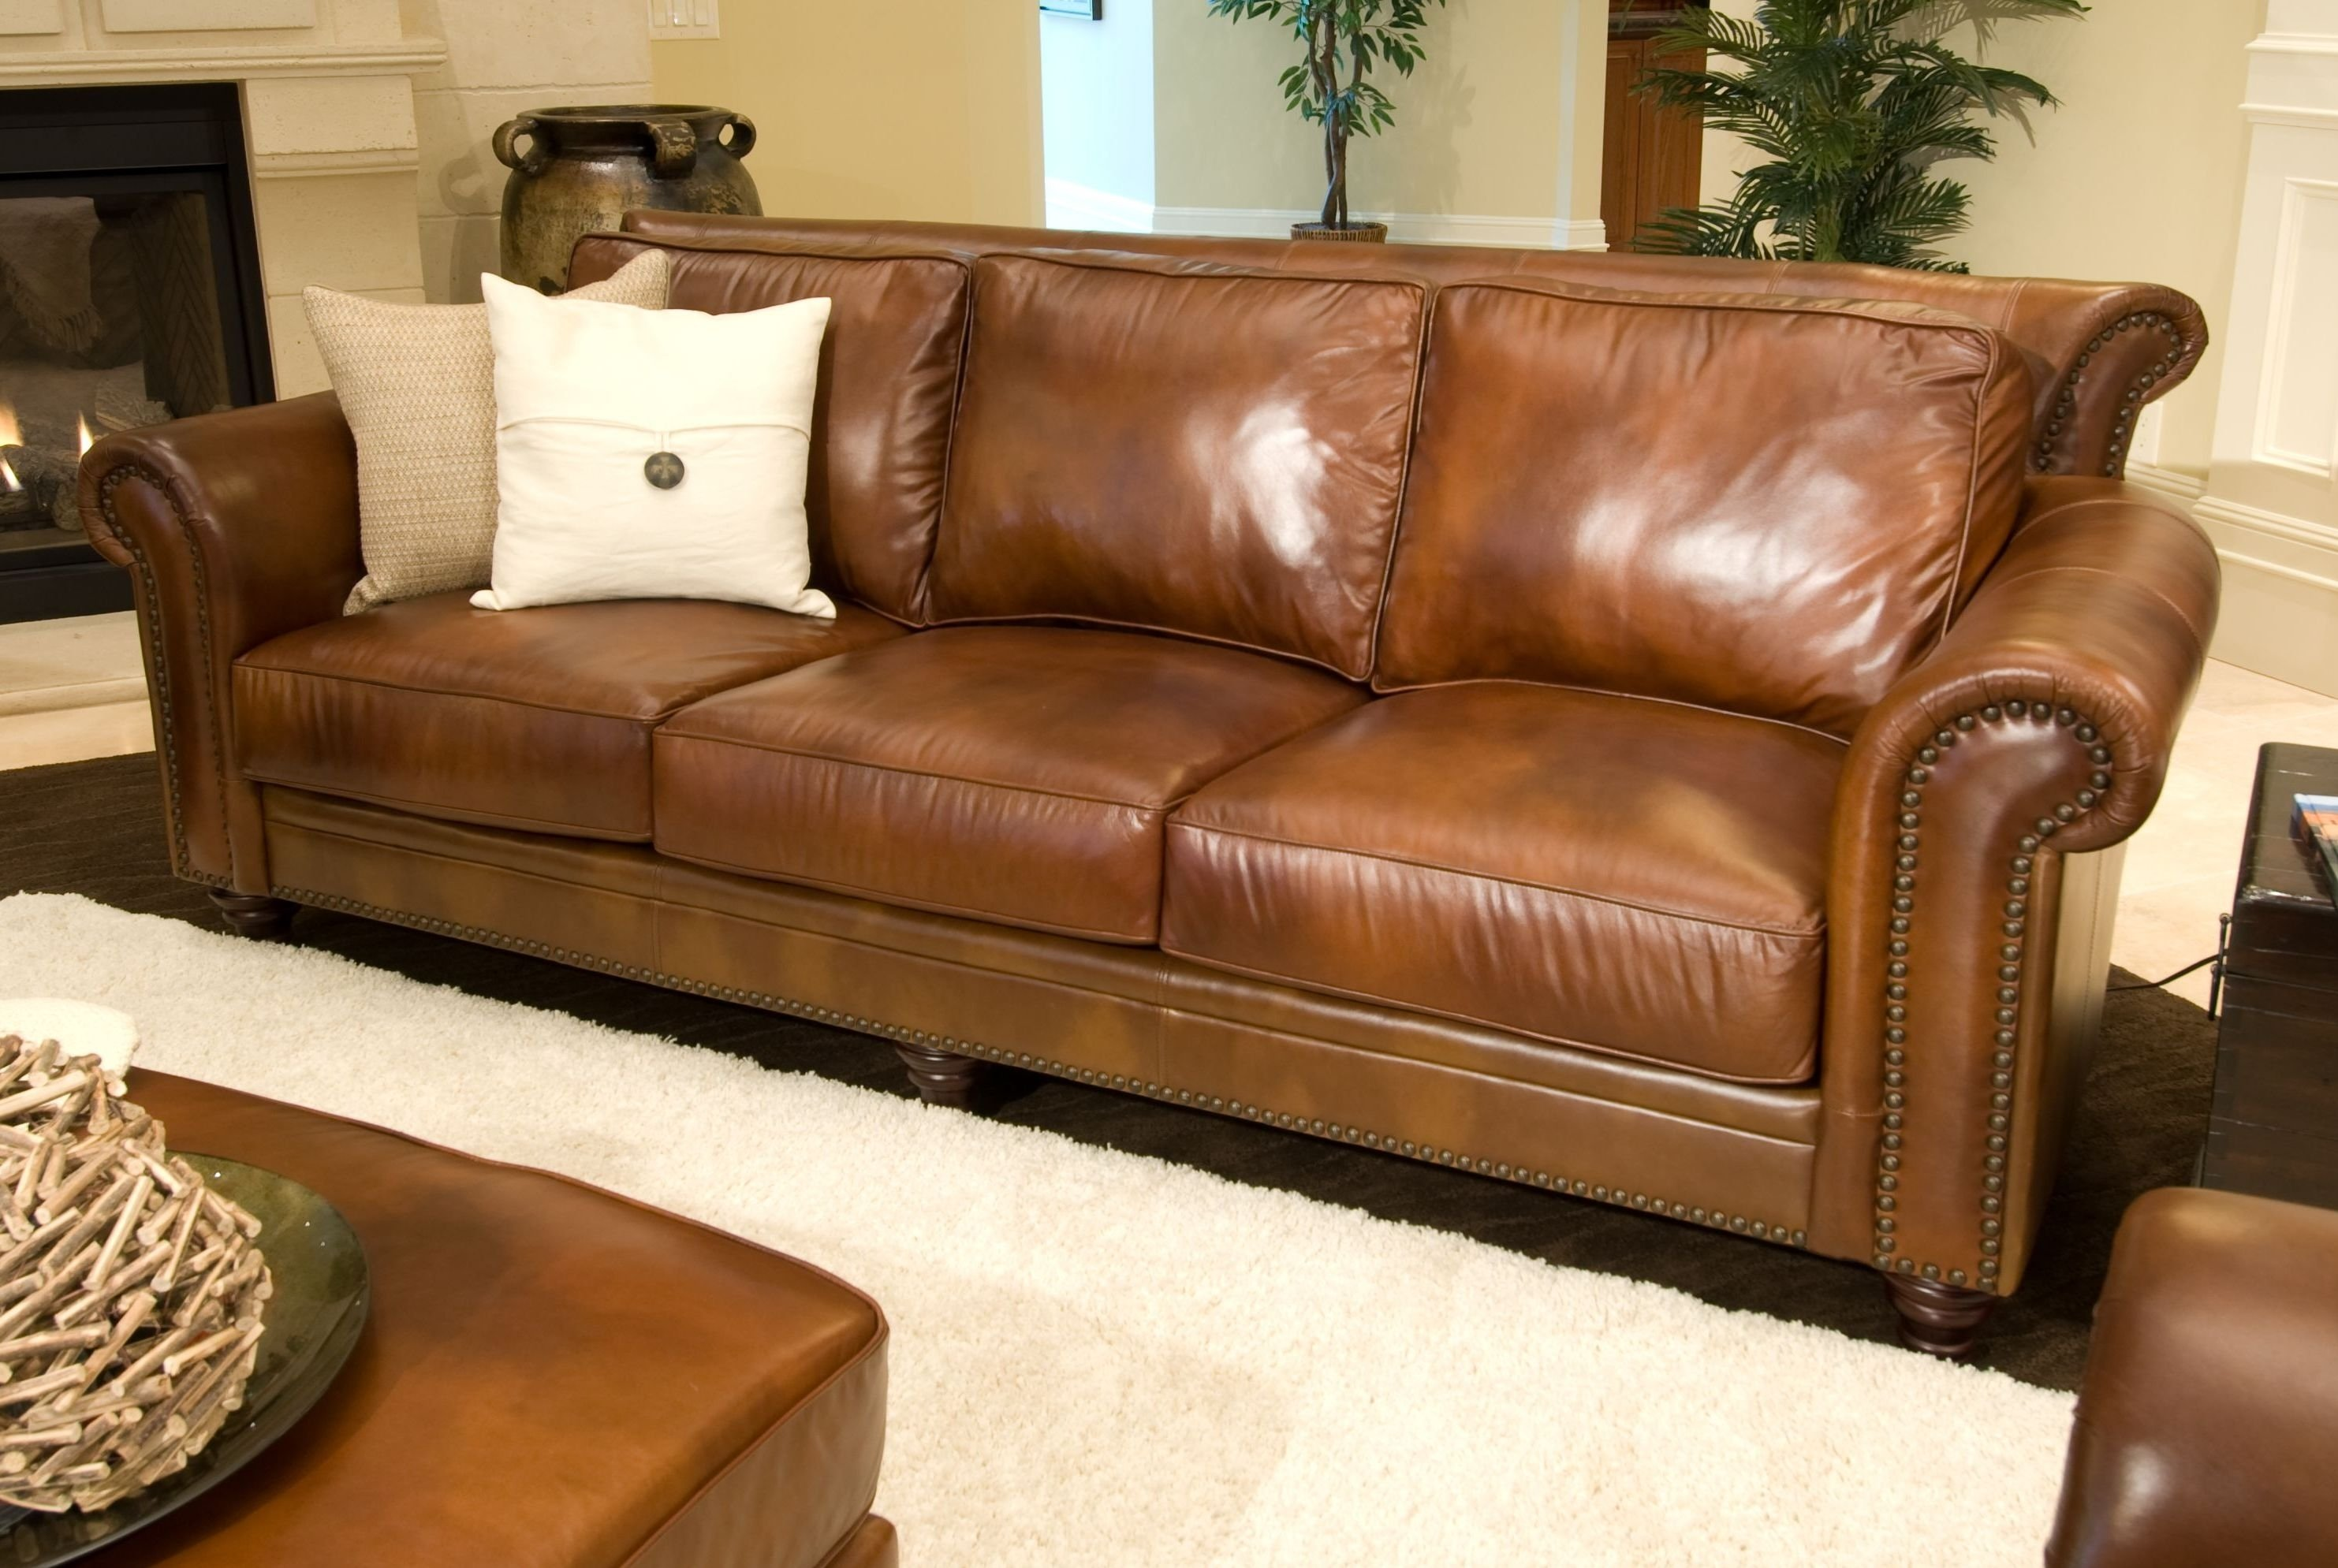 New Light Colored Leather Sofa 12 In Modern Sofa Ideas with Light Colored Leather Sofa